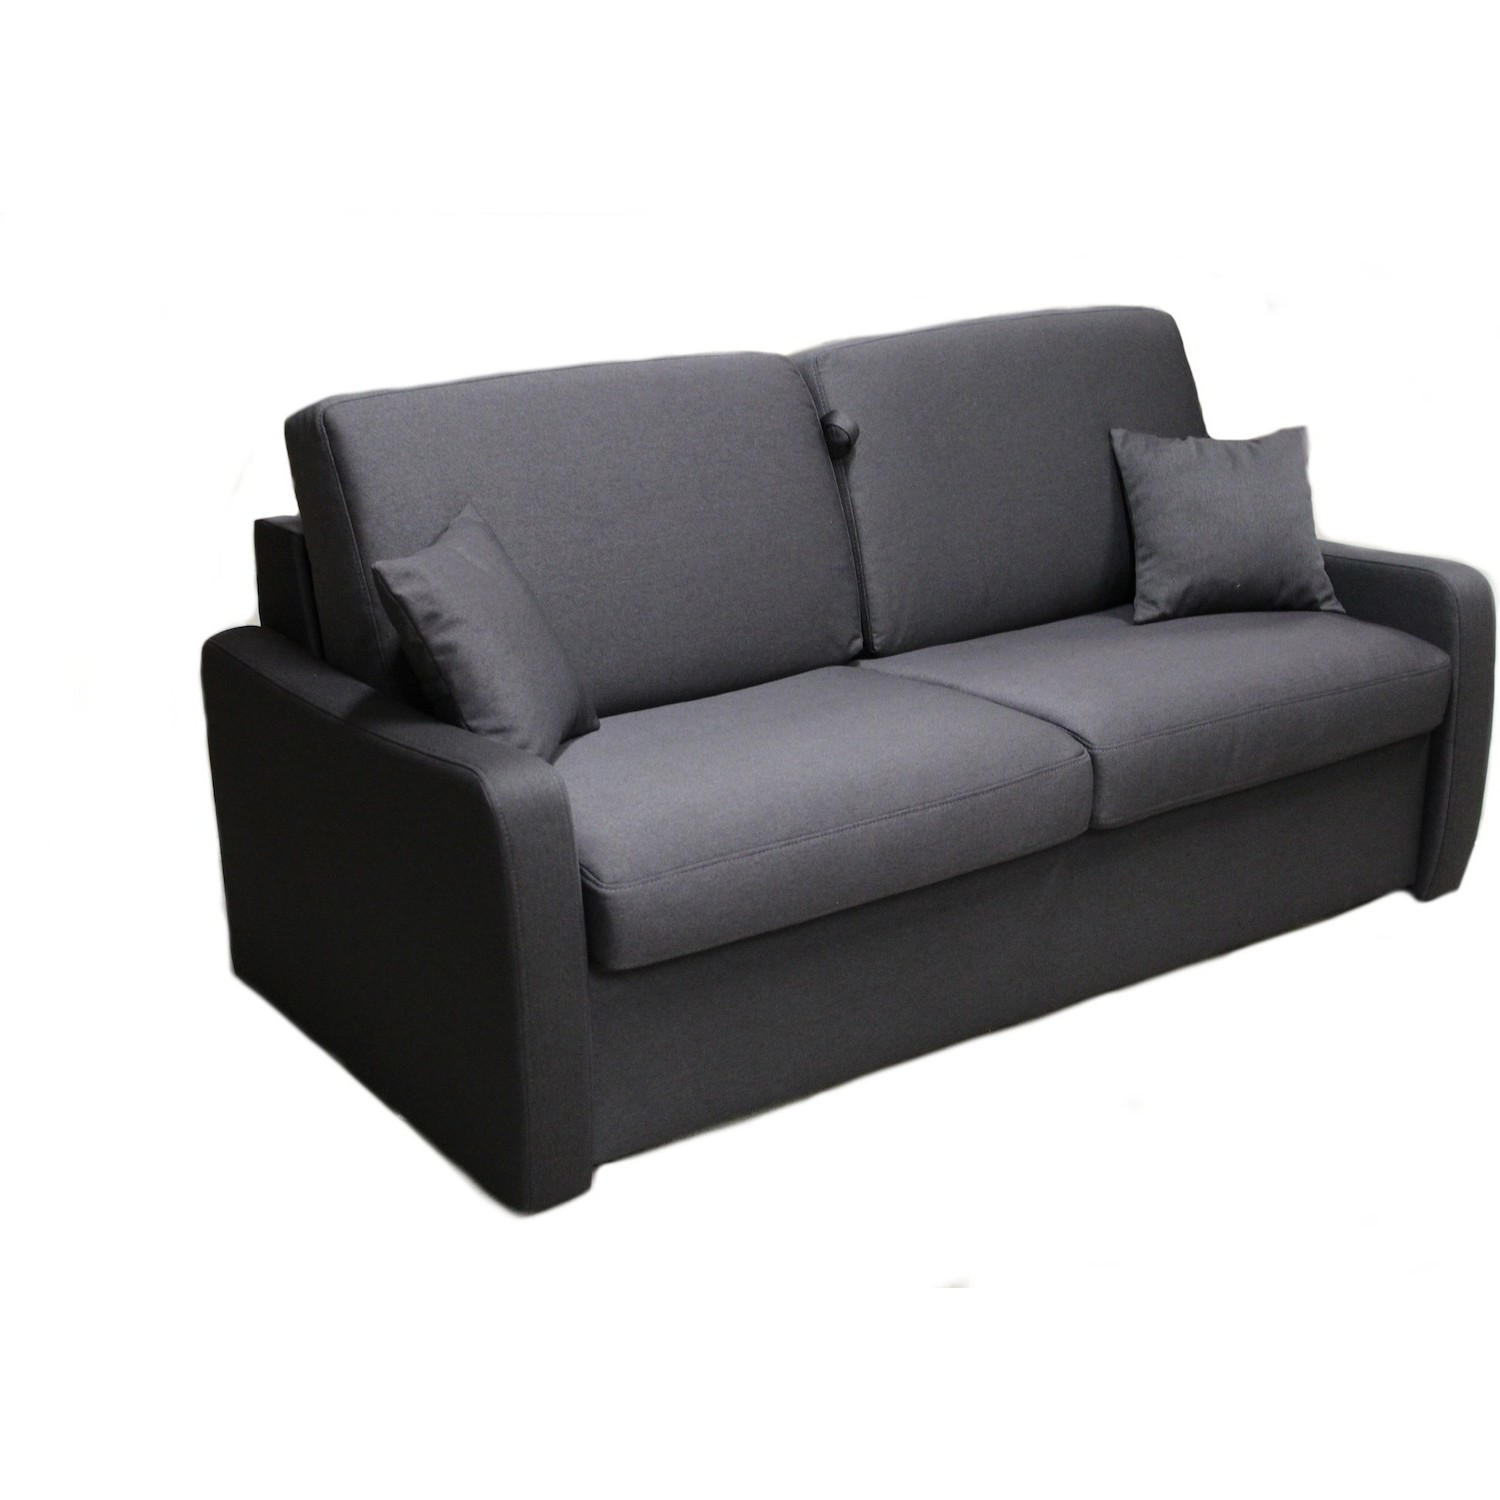 Canapé Convertible Couchage 140x200